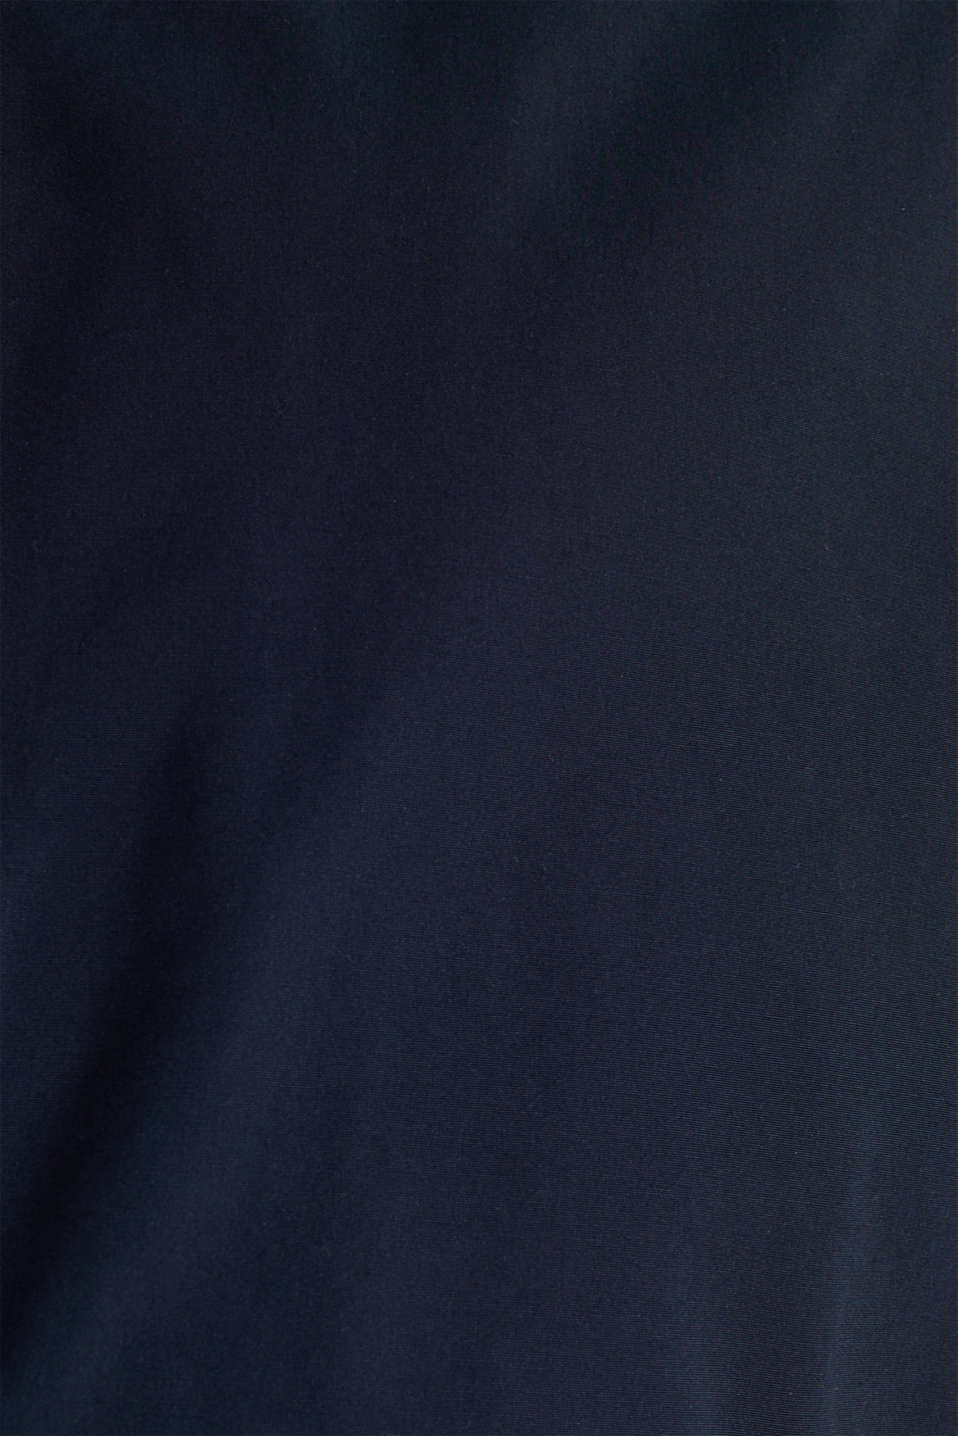 Bomber jacket with checked lining, DARK BLUE, detail image number 4